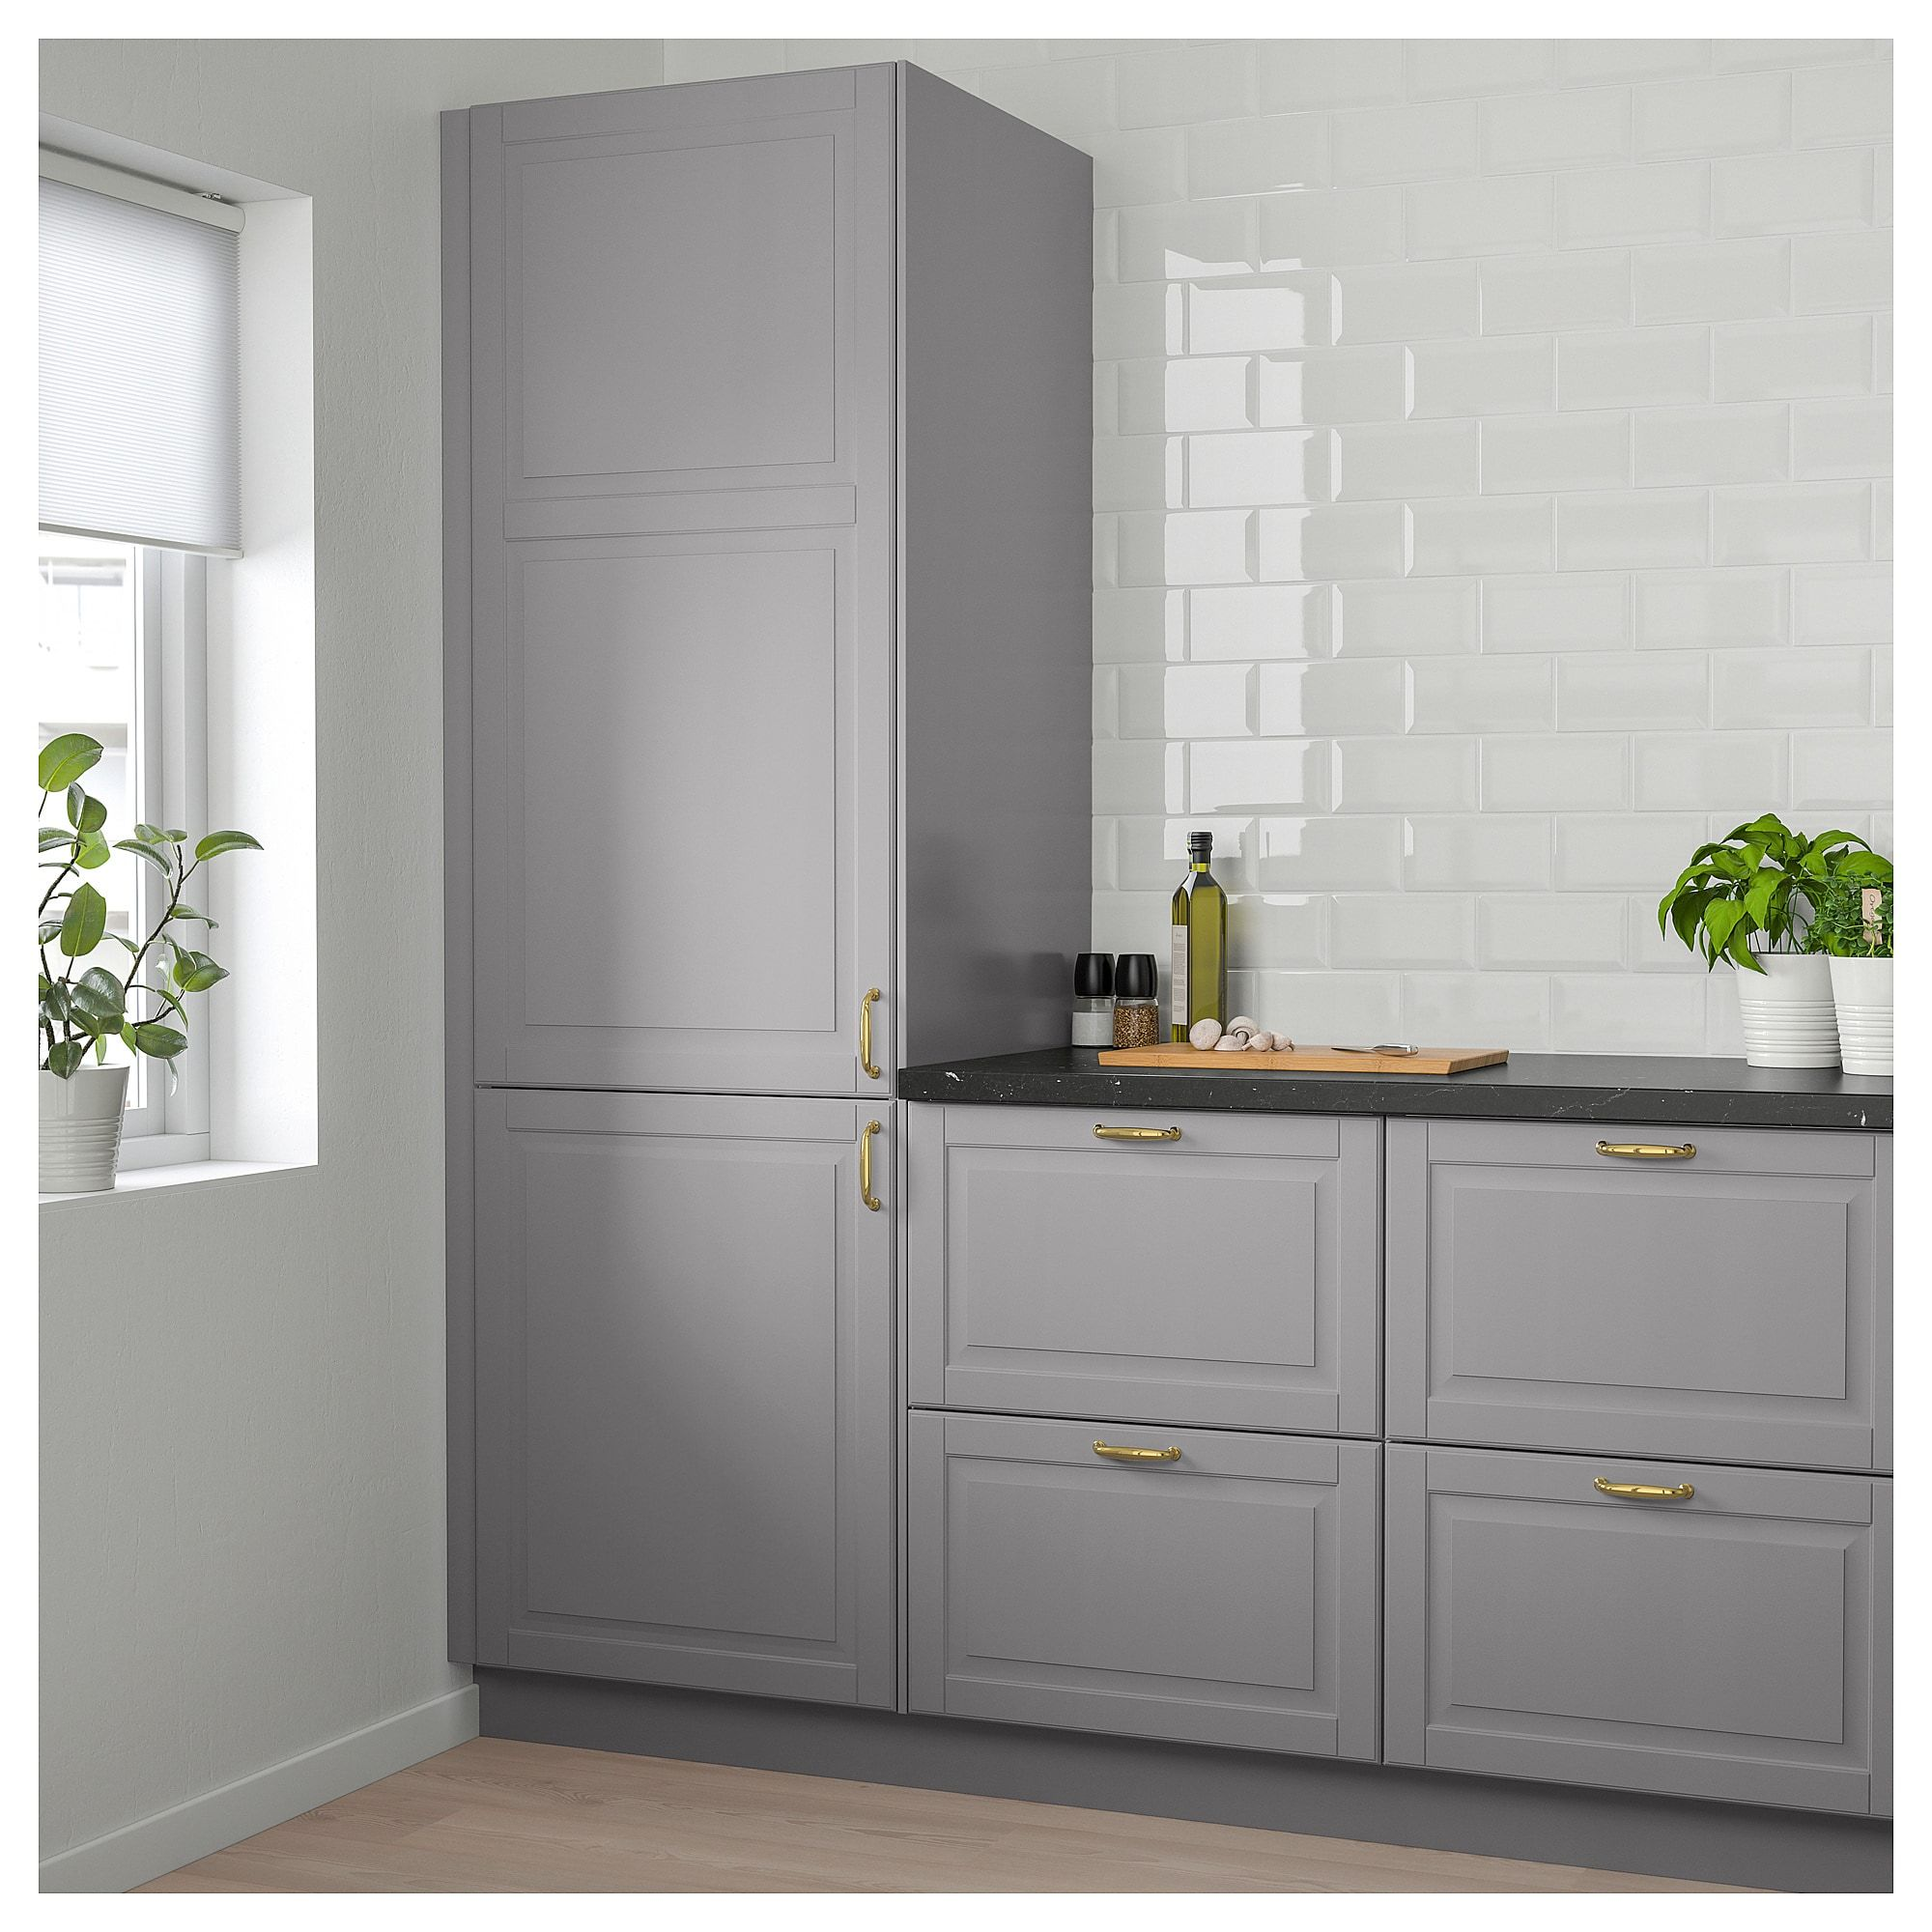 Ikea Kitchen Bodbyn Grey: Active// Winston Residence